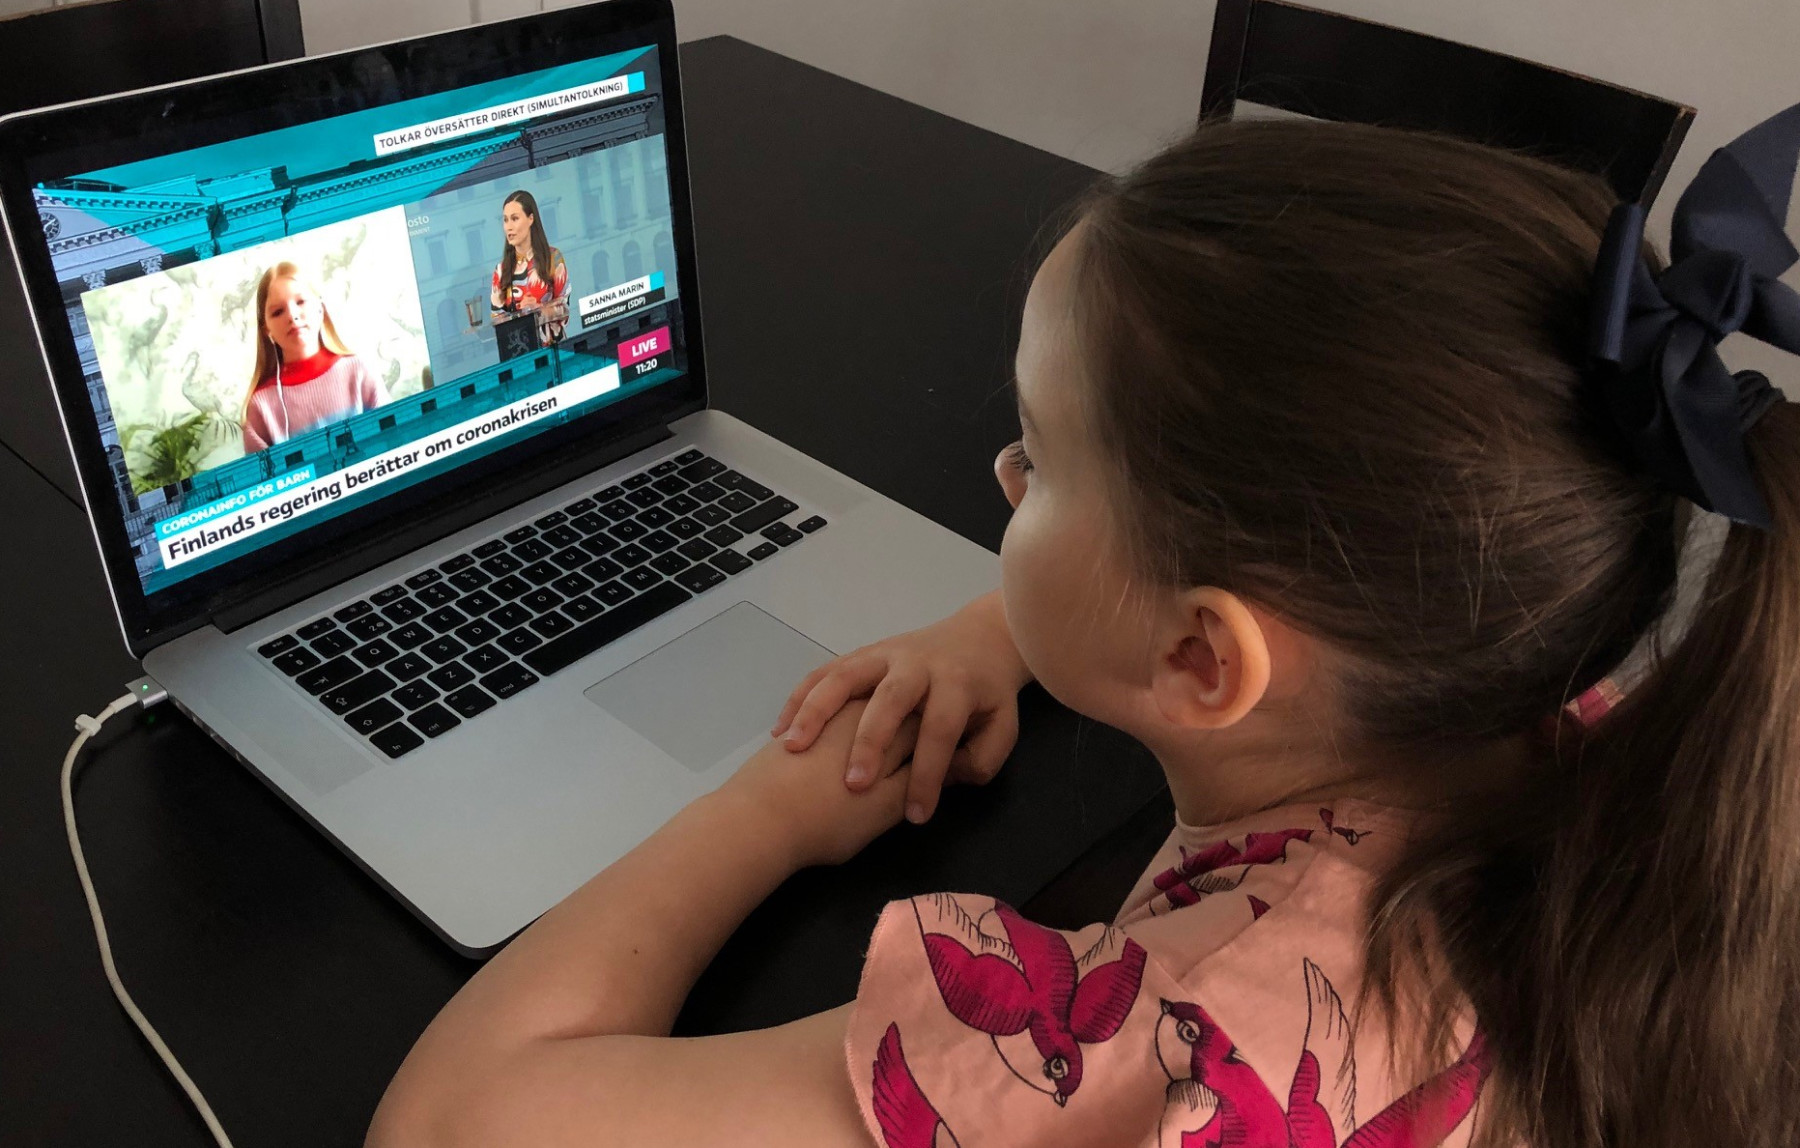 The screen of an open laptop computer shows Finnish Prime Minister Sanna Marin answering the questions of a girl named Iiris, as another schoolchild watches at home.